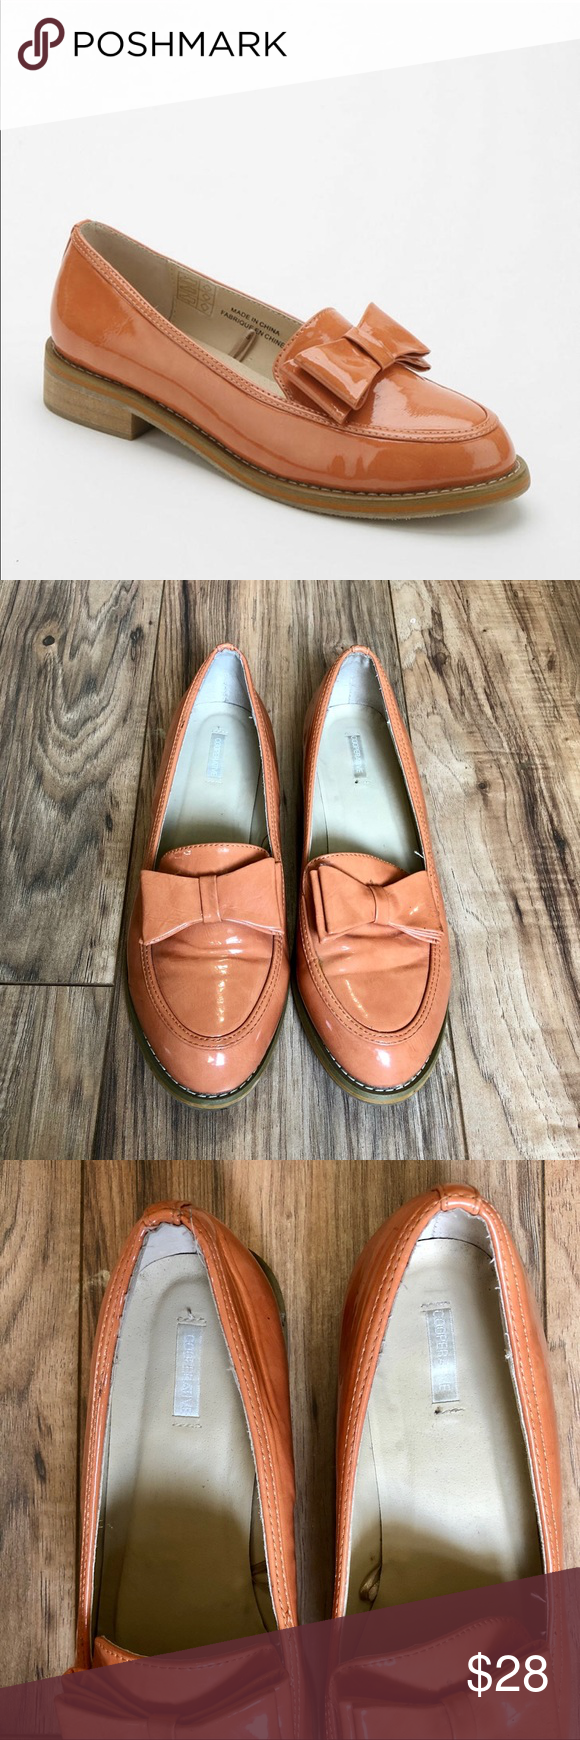 9f47c34c44f Cooperative Urban Outfitters Apricot Patent Loafer GREAT shoes from  Cooperative